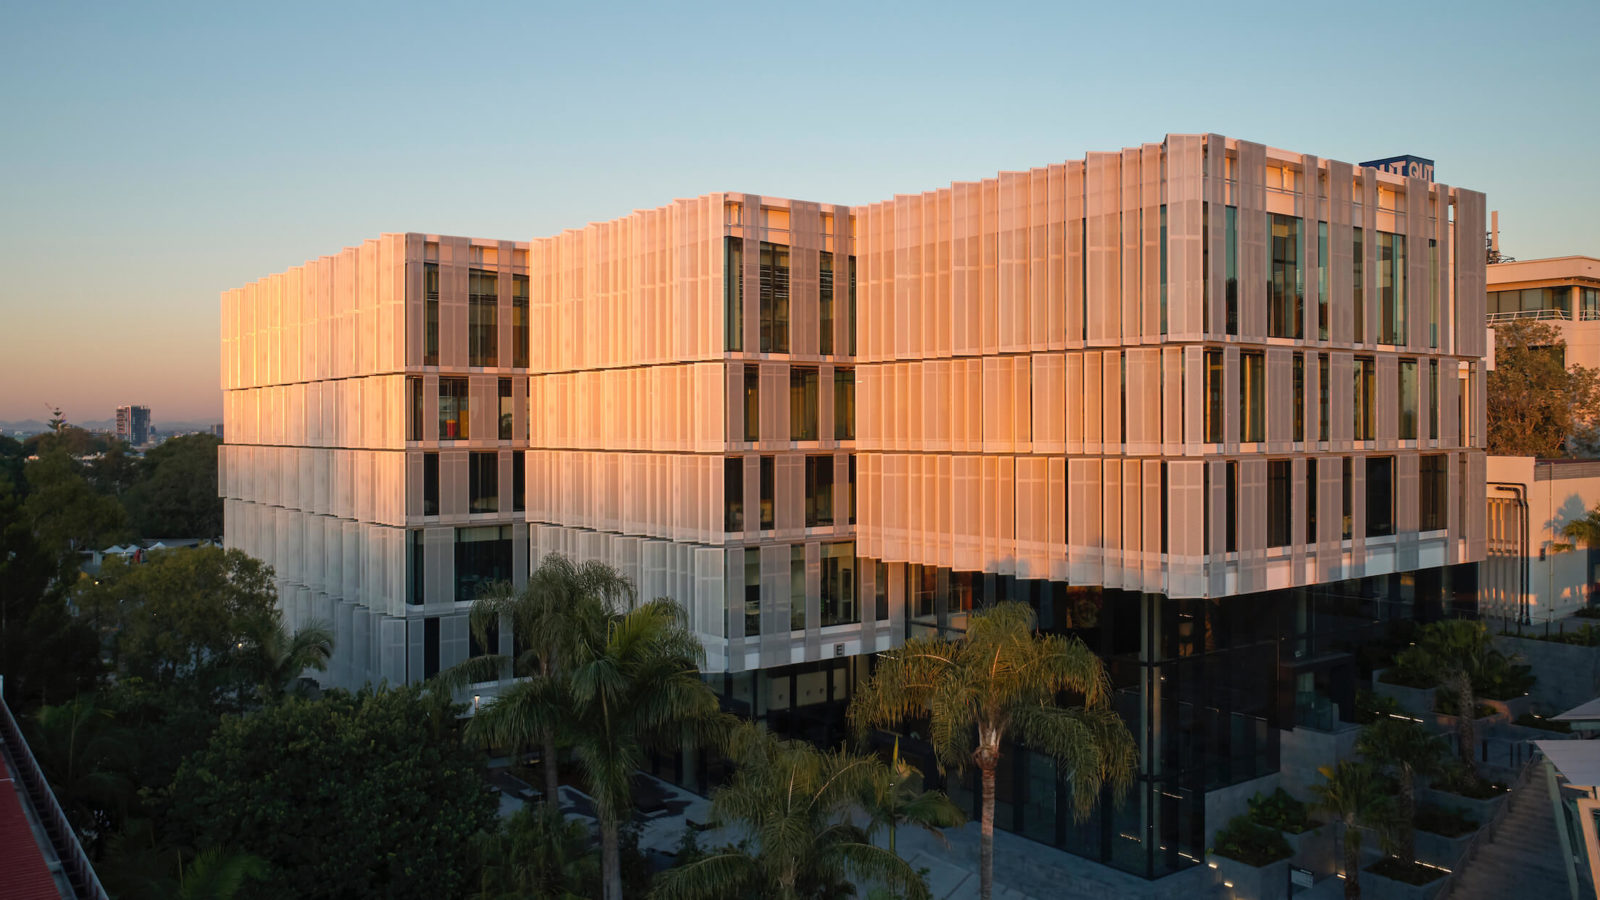 Henning Larsen QUT Education Precinct Building